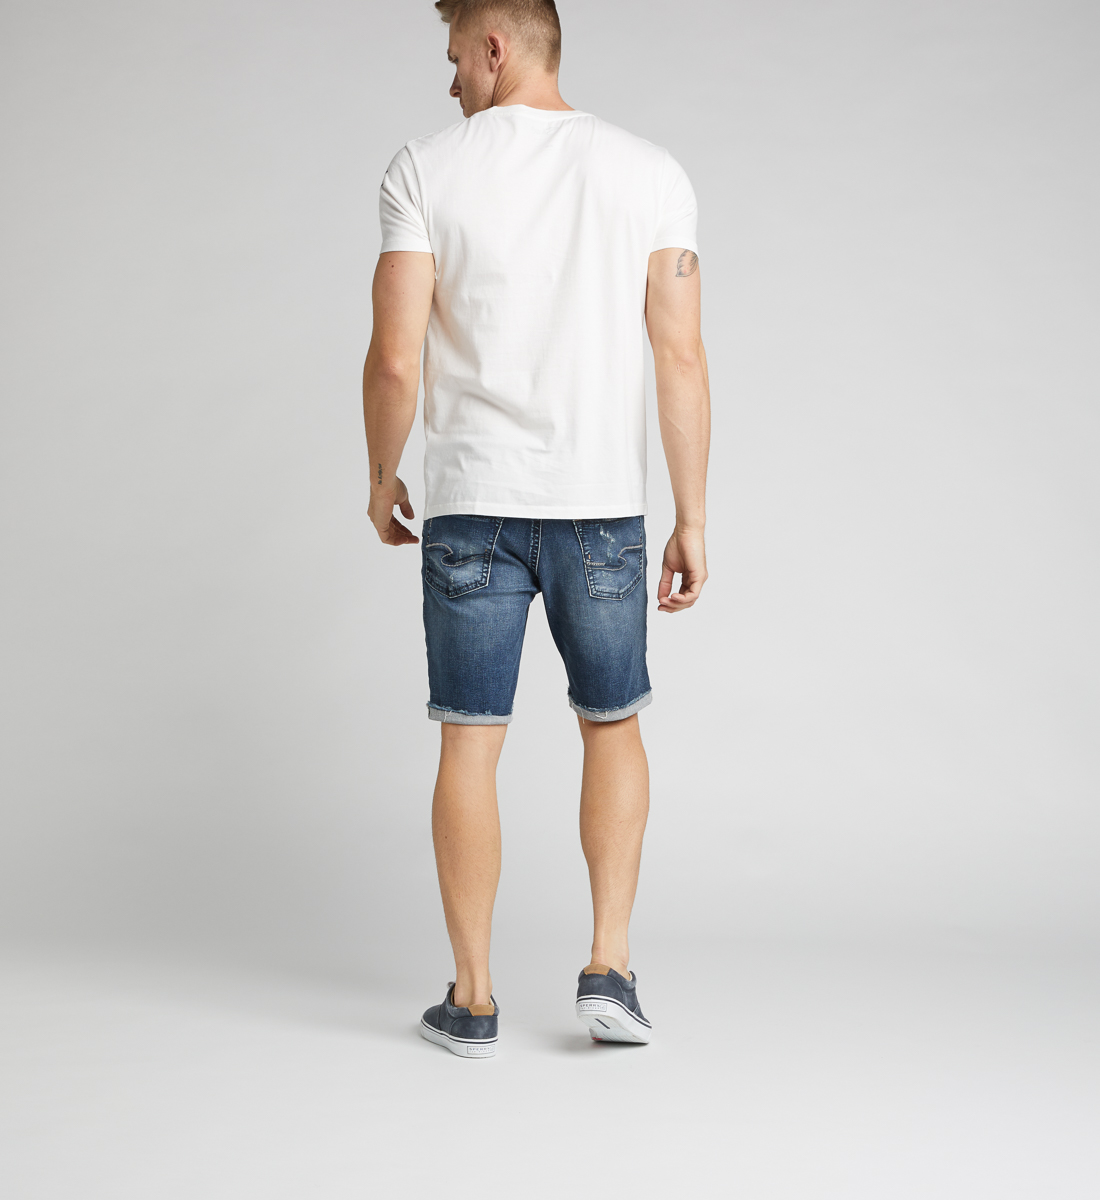 Dax Short-Sleeve Graphic Tee,Warm White Side